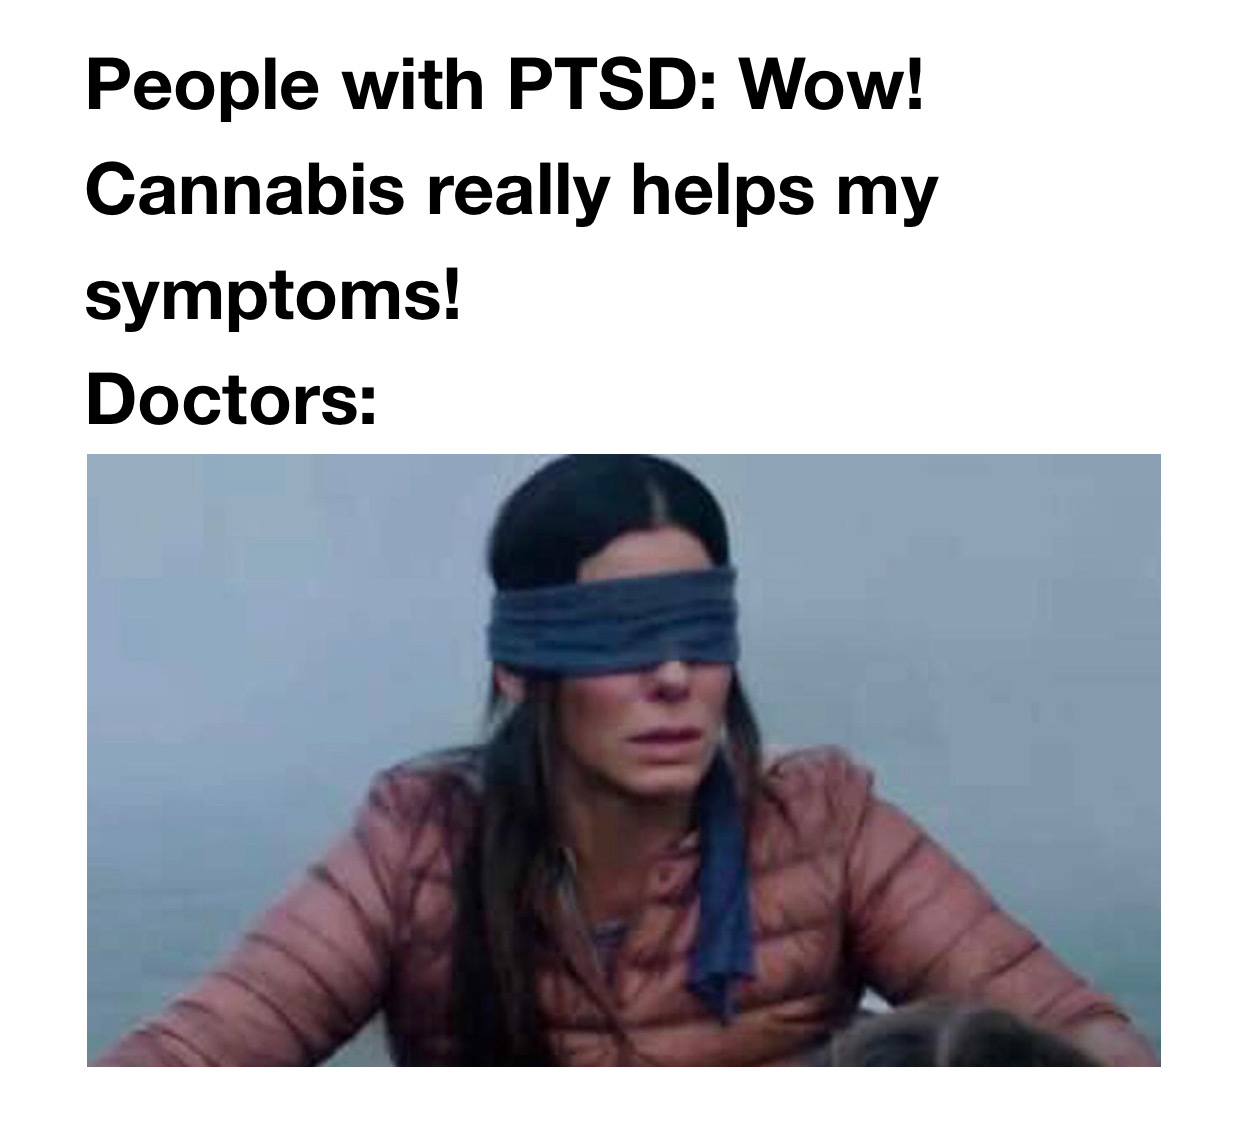 people_with_ptsd.jpg